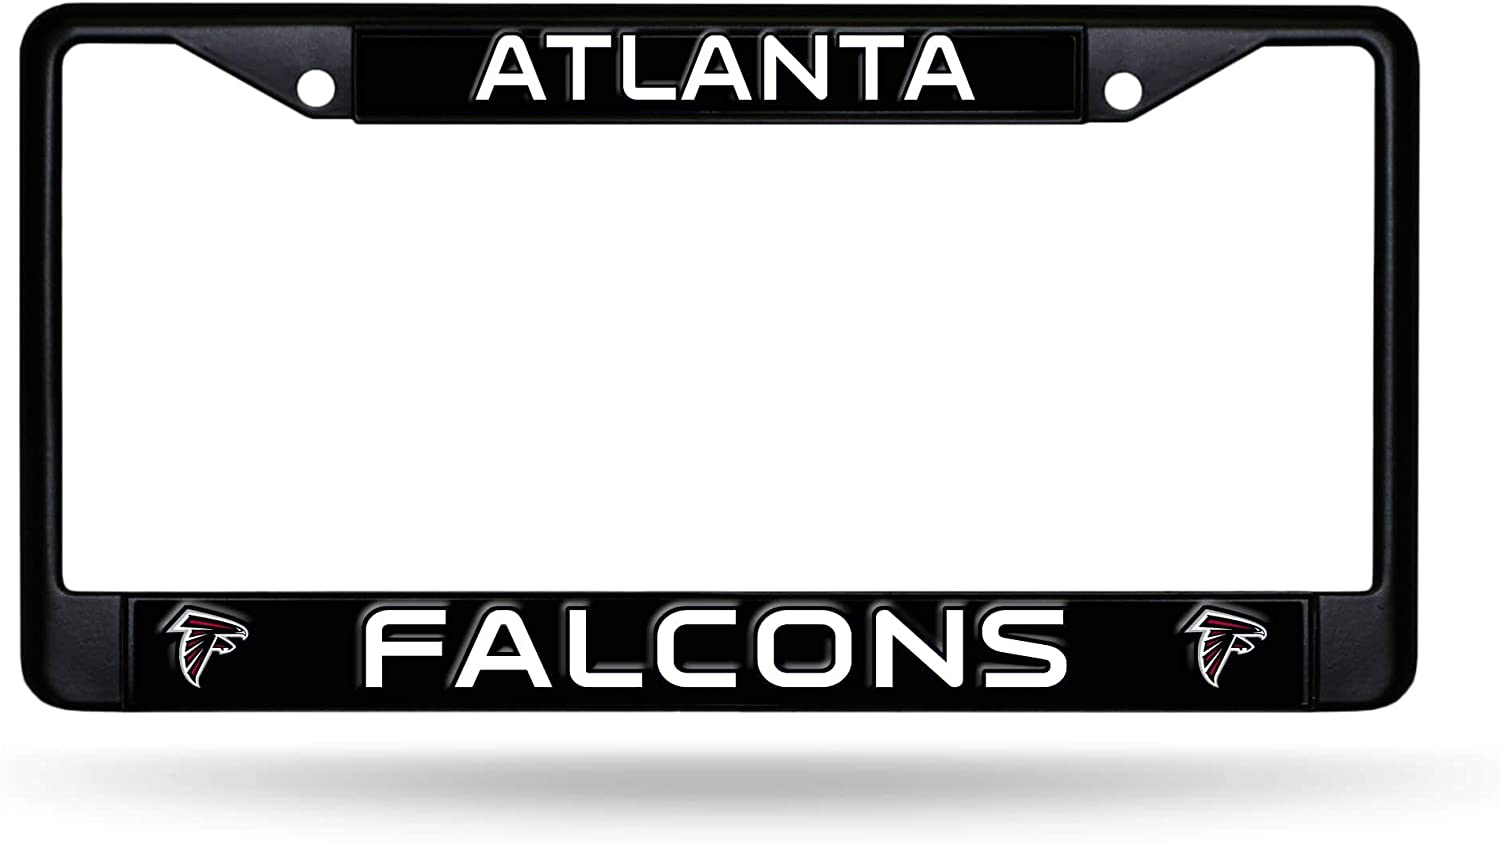 Atlanta Falcons Black Metal License Plate Frame